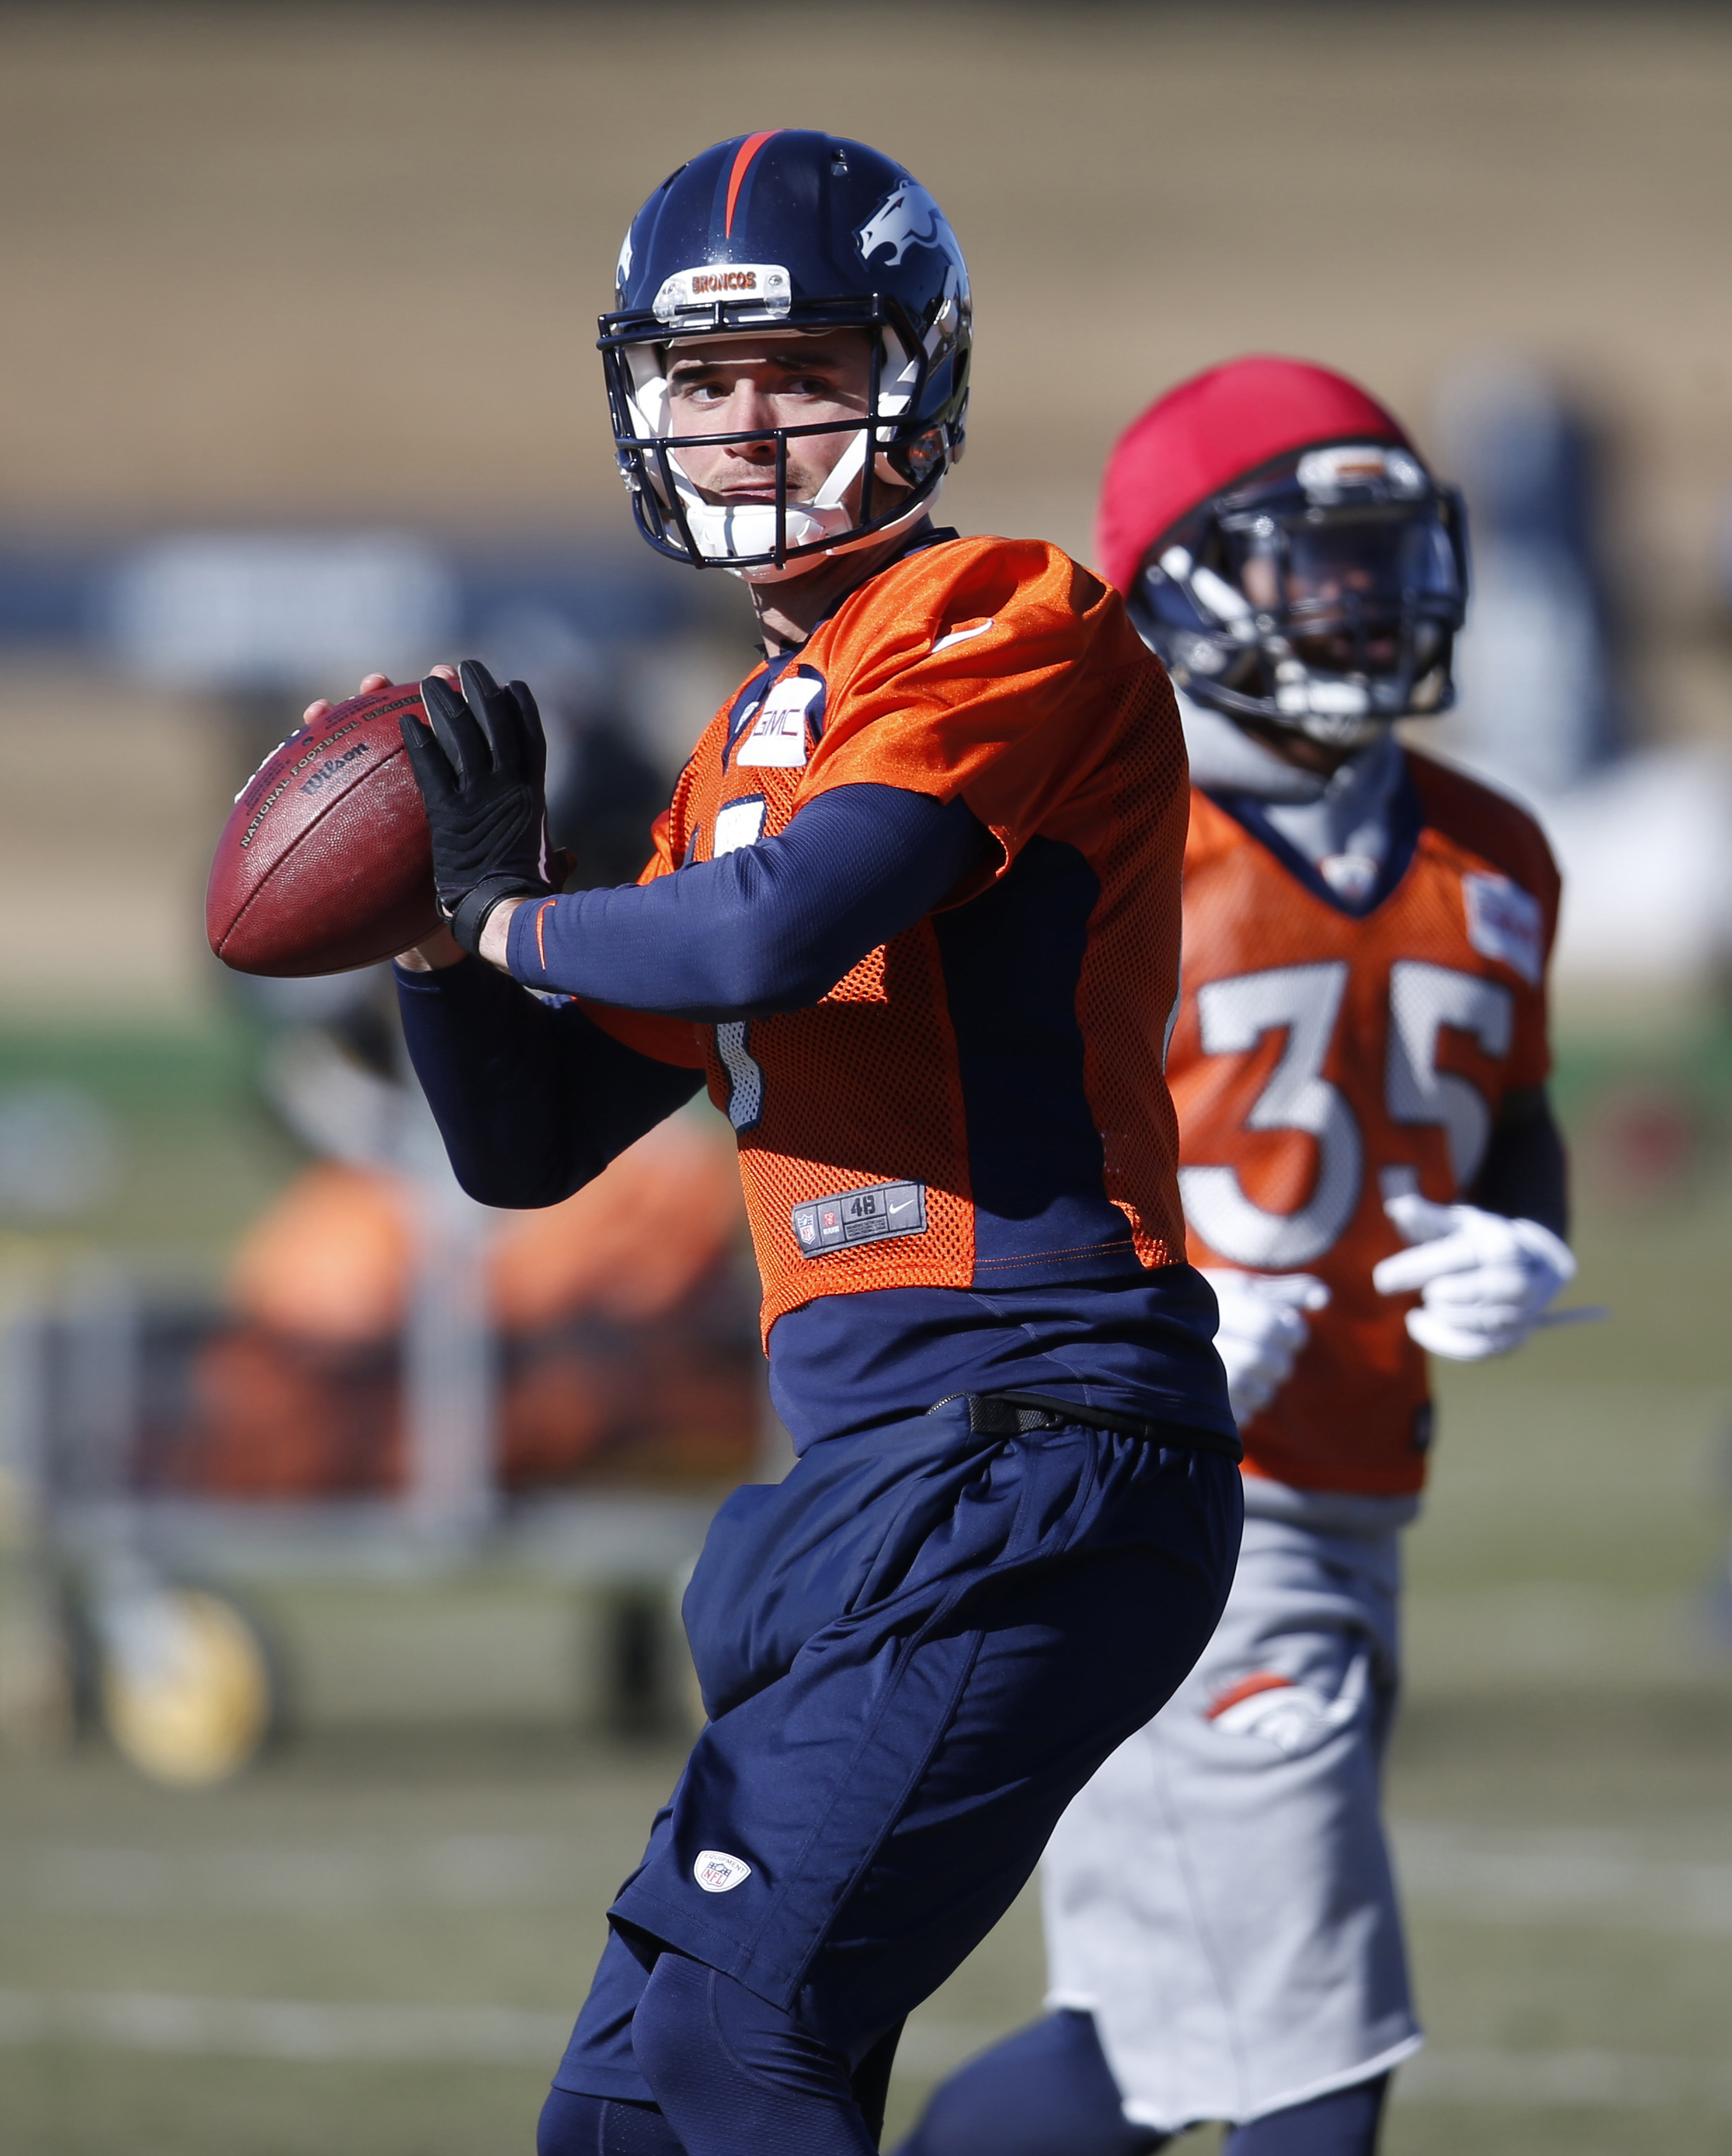 FILE - In this Jan. 21, 2016, file photo, Denver Broncos quarterback Brock Osweiler passes during an NFL football practice at the team's headquarters in Englewood, Colo. Now that the Broncos have bid their farewells to quarterback Peyton Manning, who reti